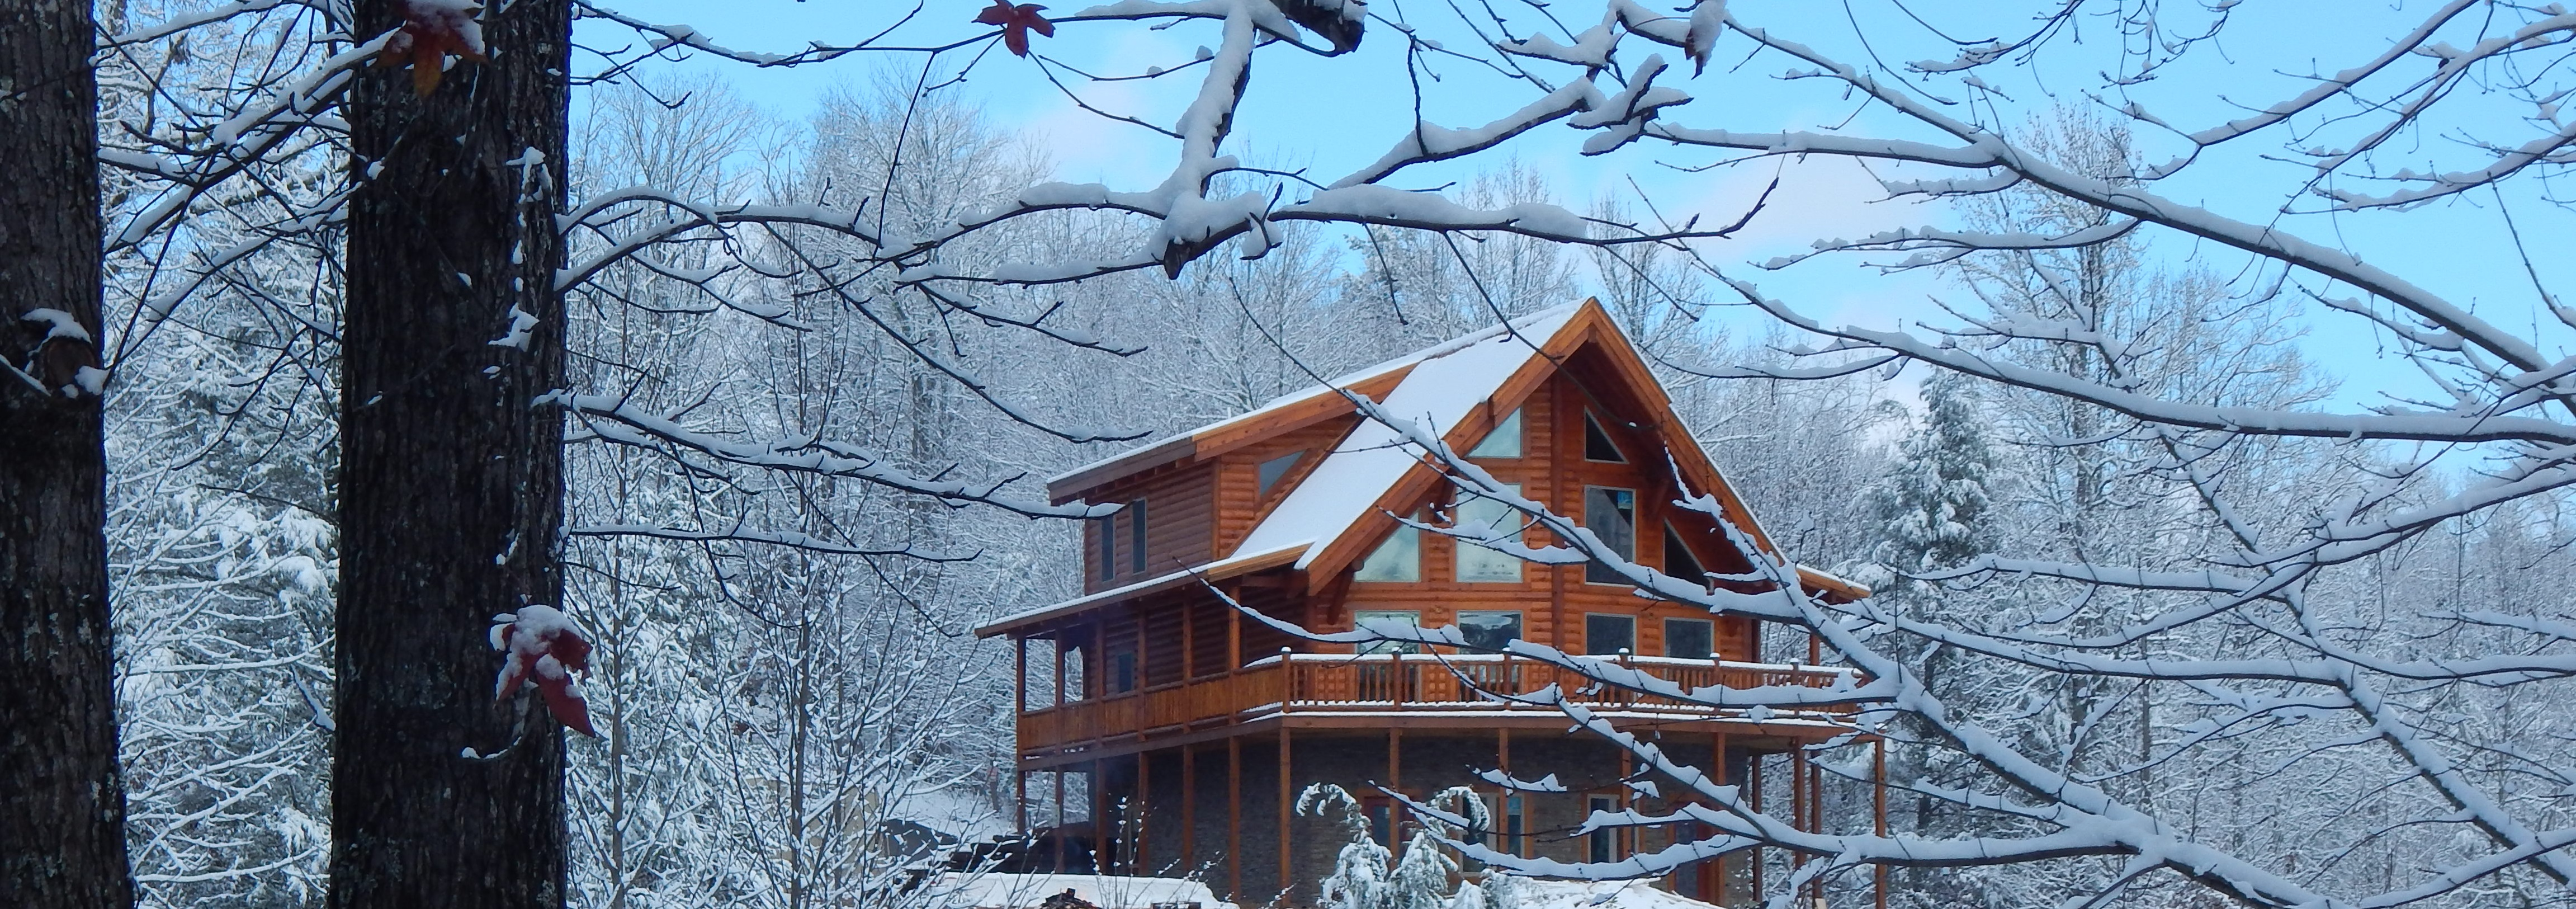 Ridge View Lodge - Smoky Mountains Cabin By Owner